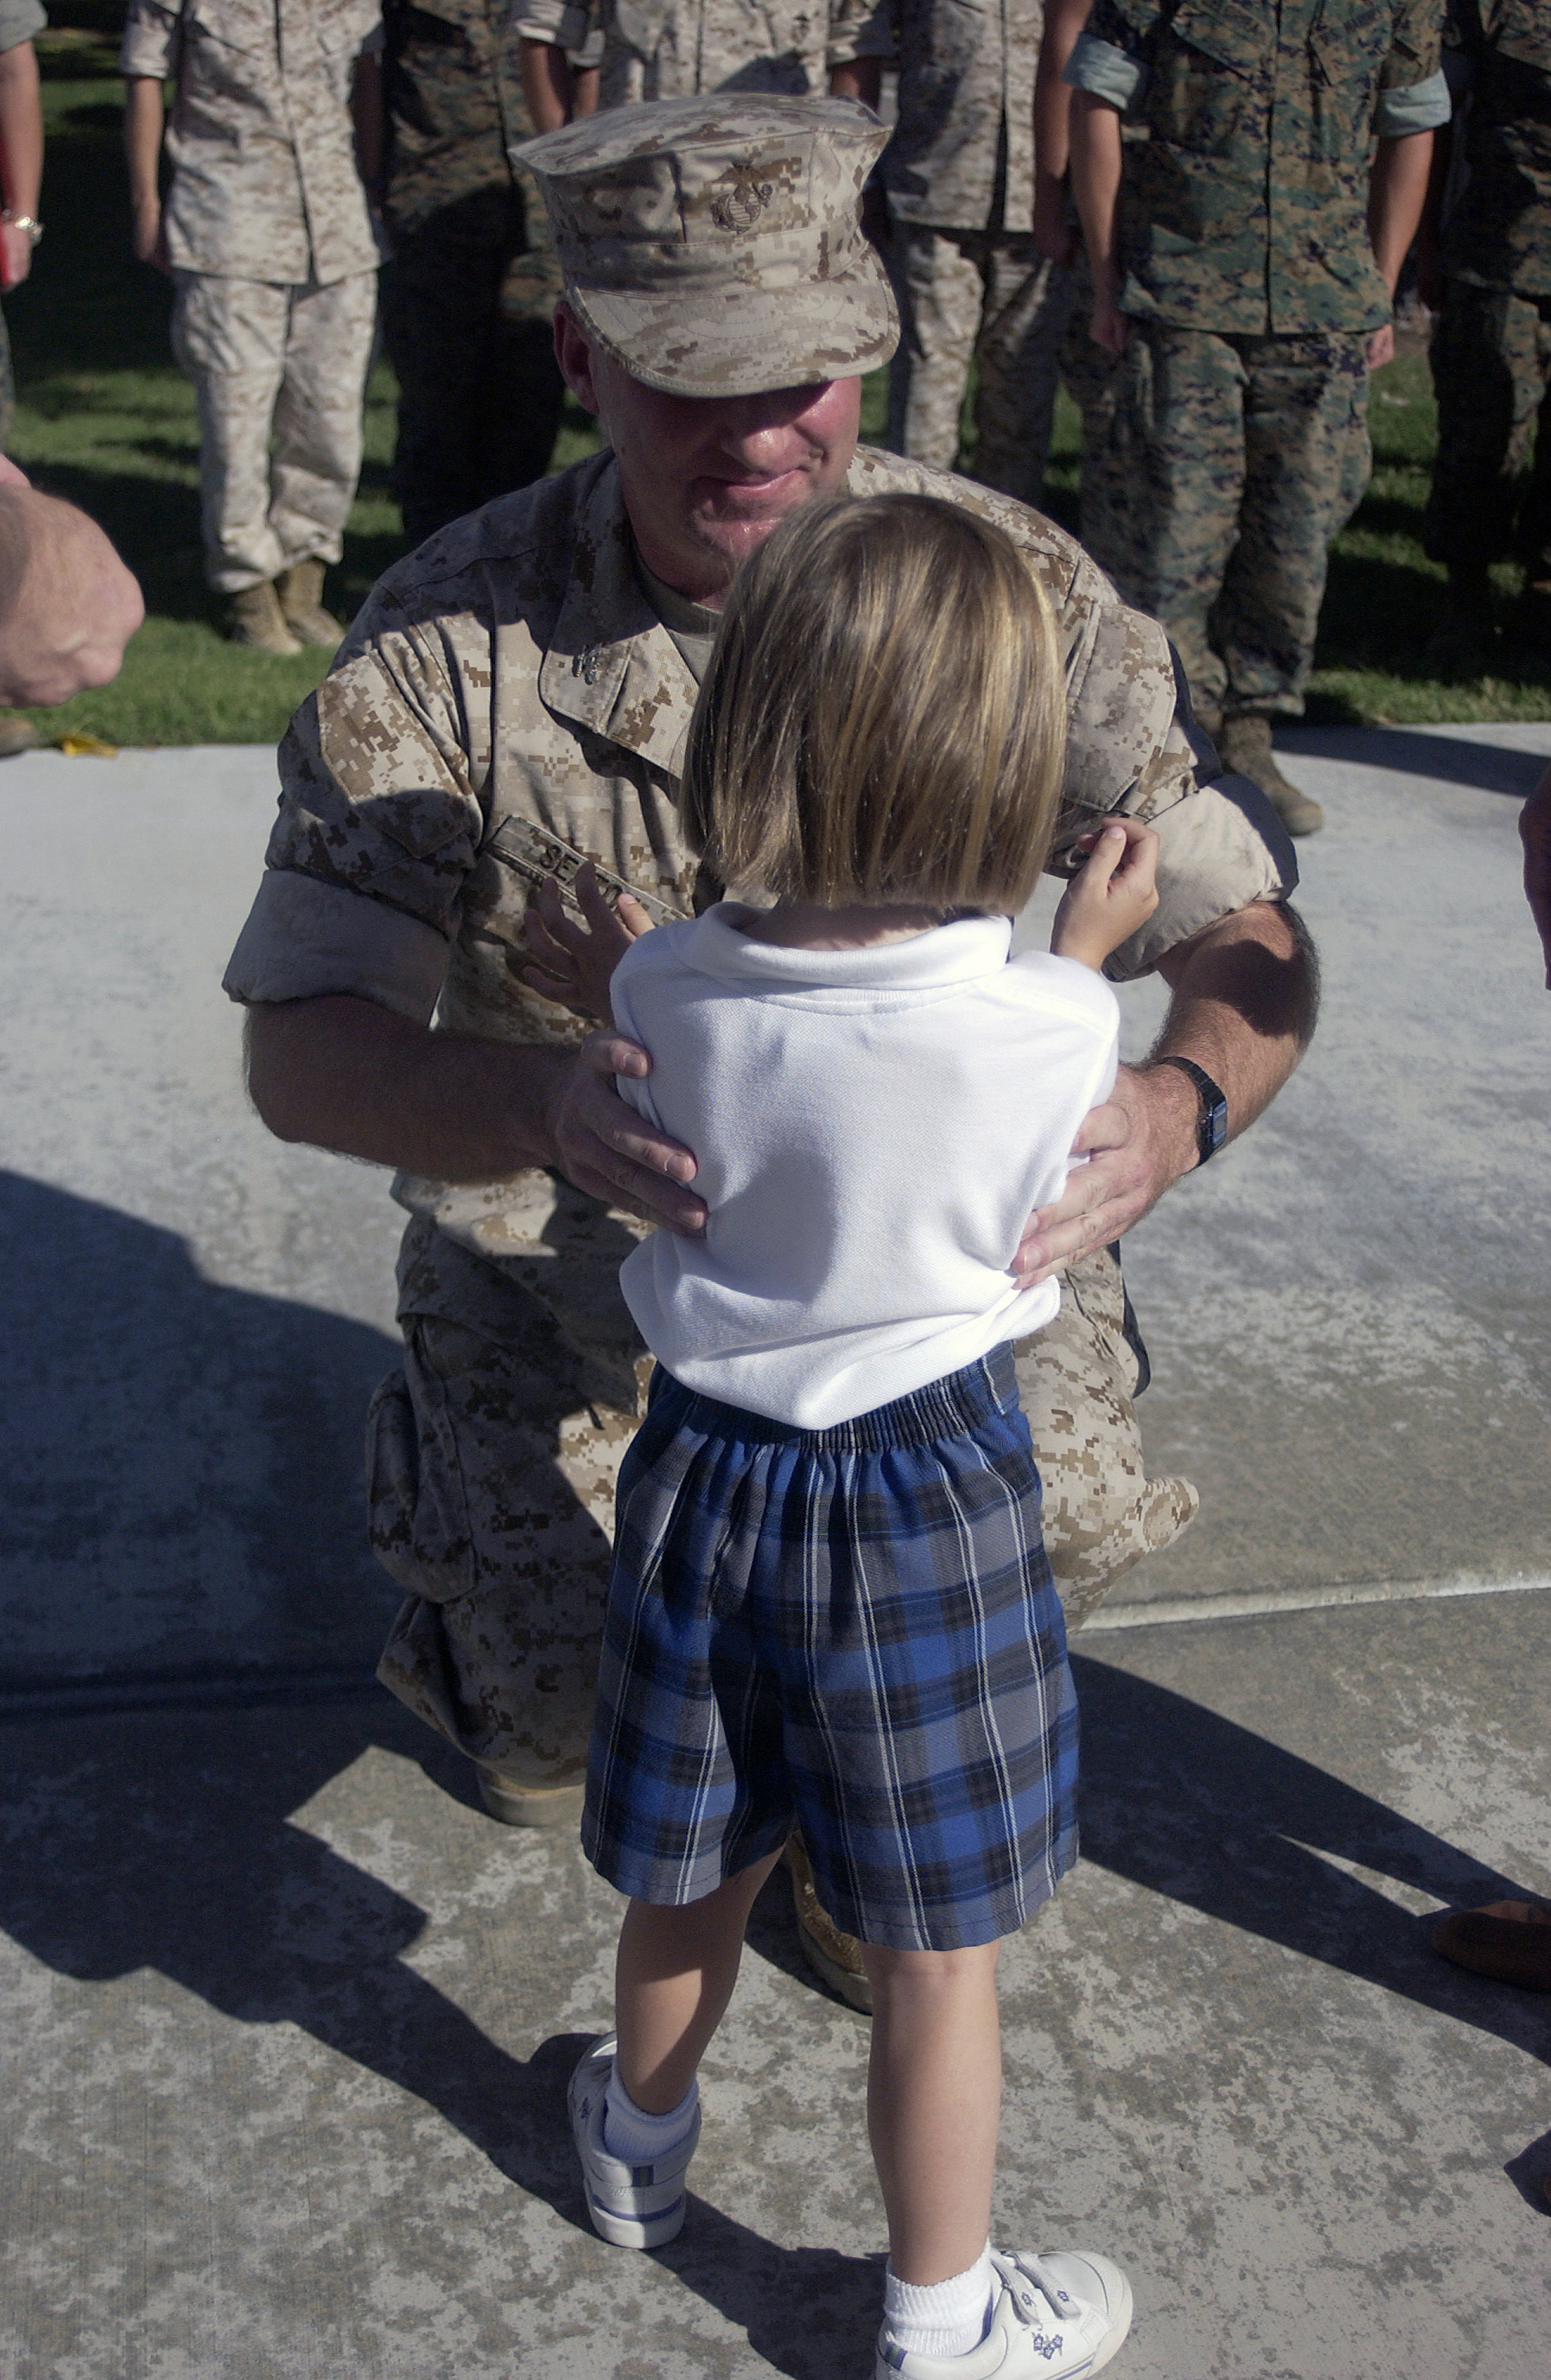 U.S. Marine Corps COL. James B. Seaton gives his daughter, Erin Seaton, a kiss during his promotion ceremony at Marine Corps Air Ground Command Center (MCAGCC), Twentynine Palms, Calif., Sept. 9, 2004. (U.S. Marine Corps photo by Lance CPL. Patrick J. Green) (Released)